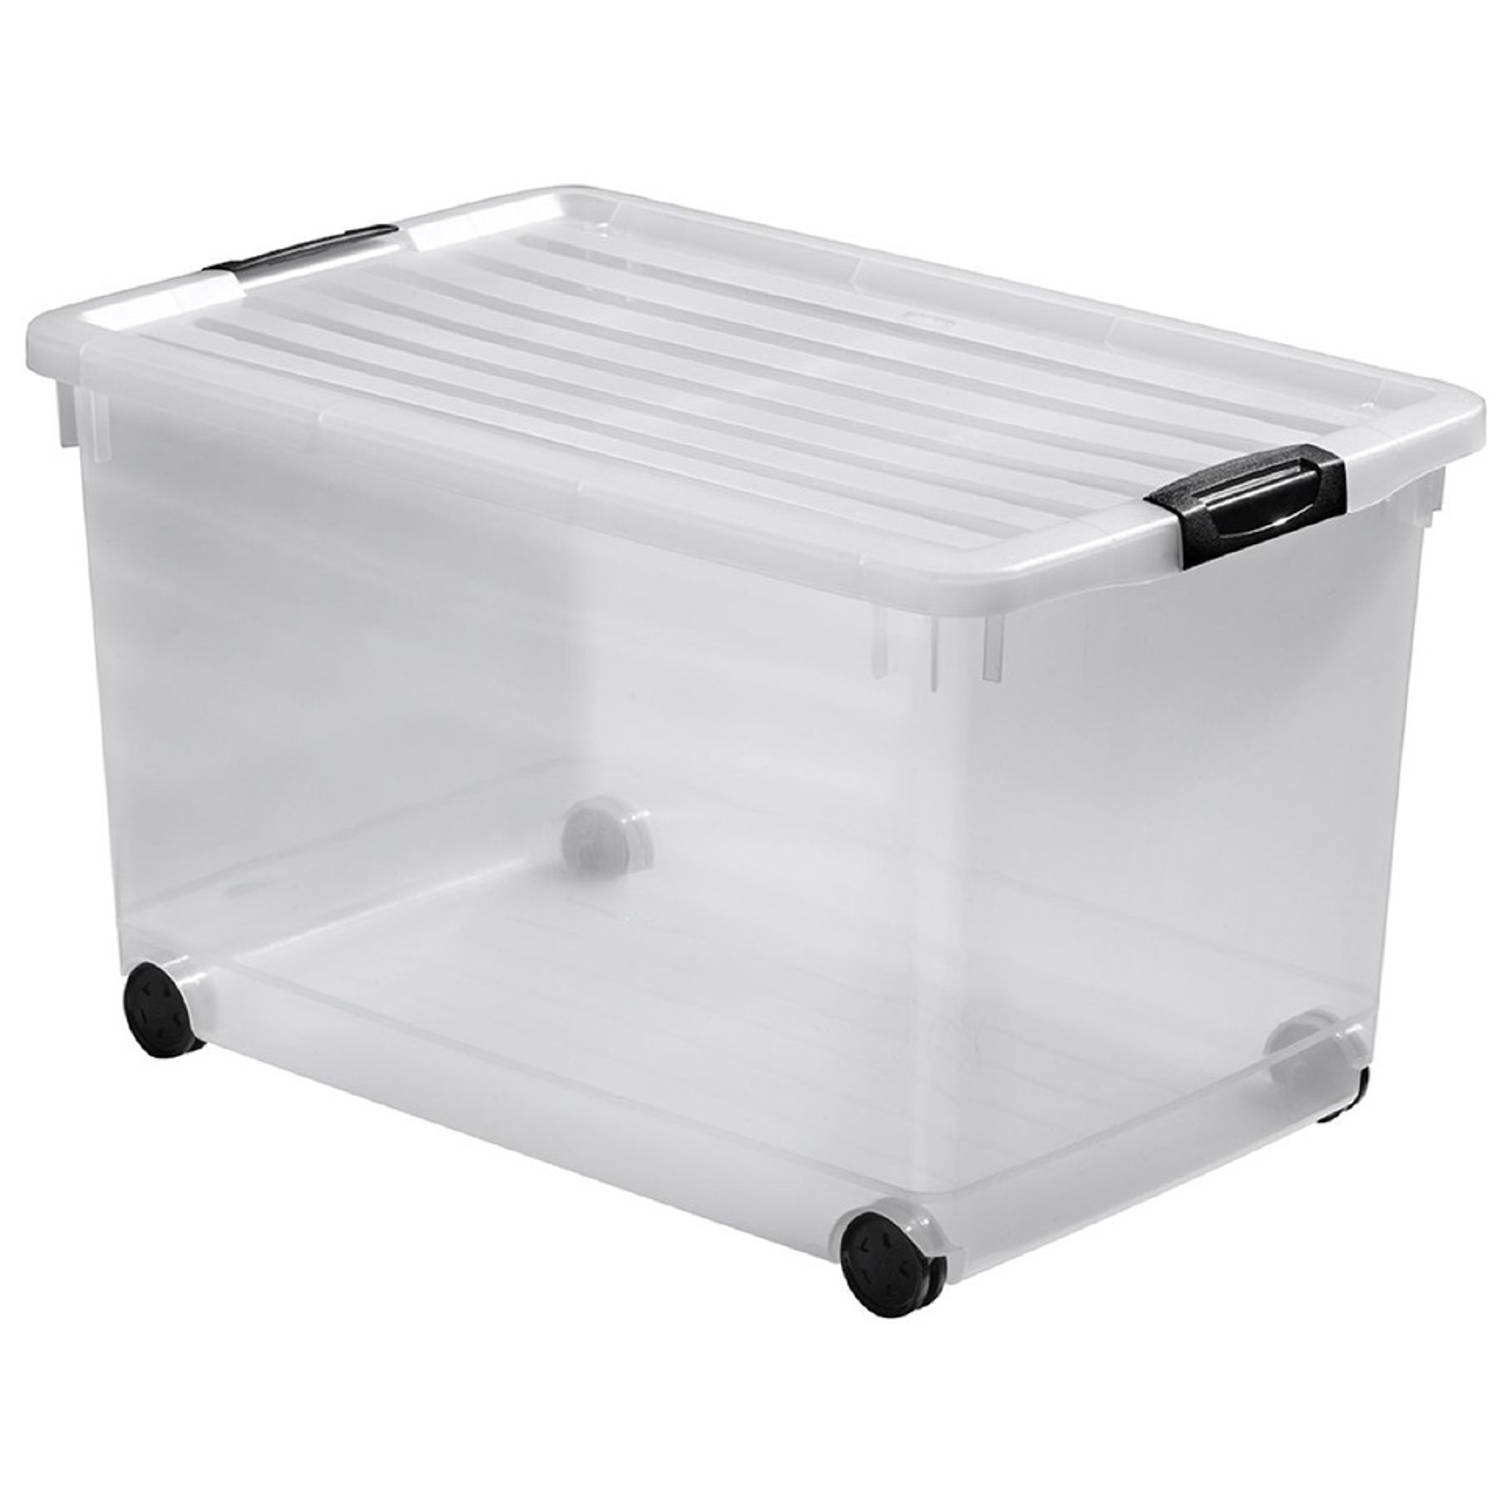 Curver Click'n Fit Multiboxx opbergbox 60 liter transparant